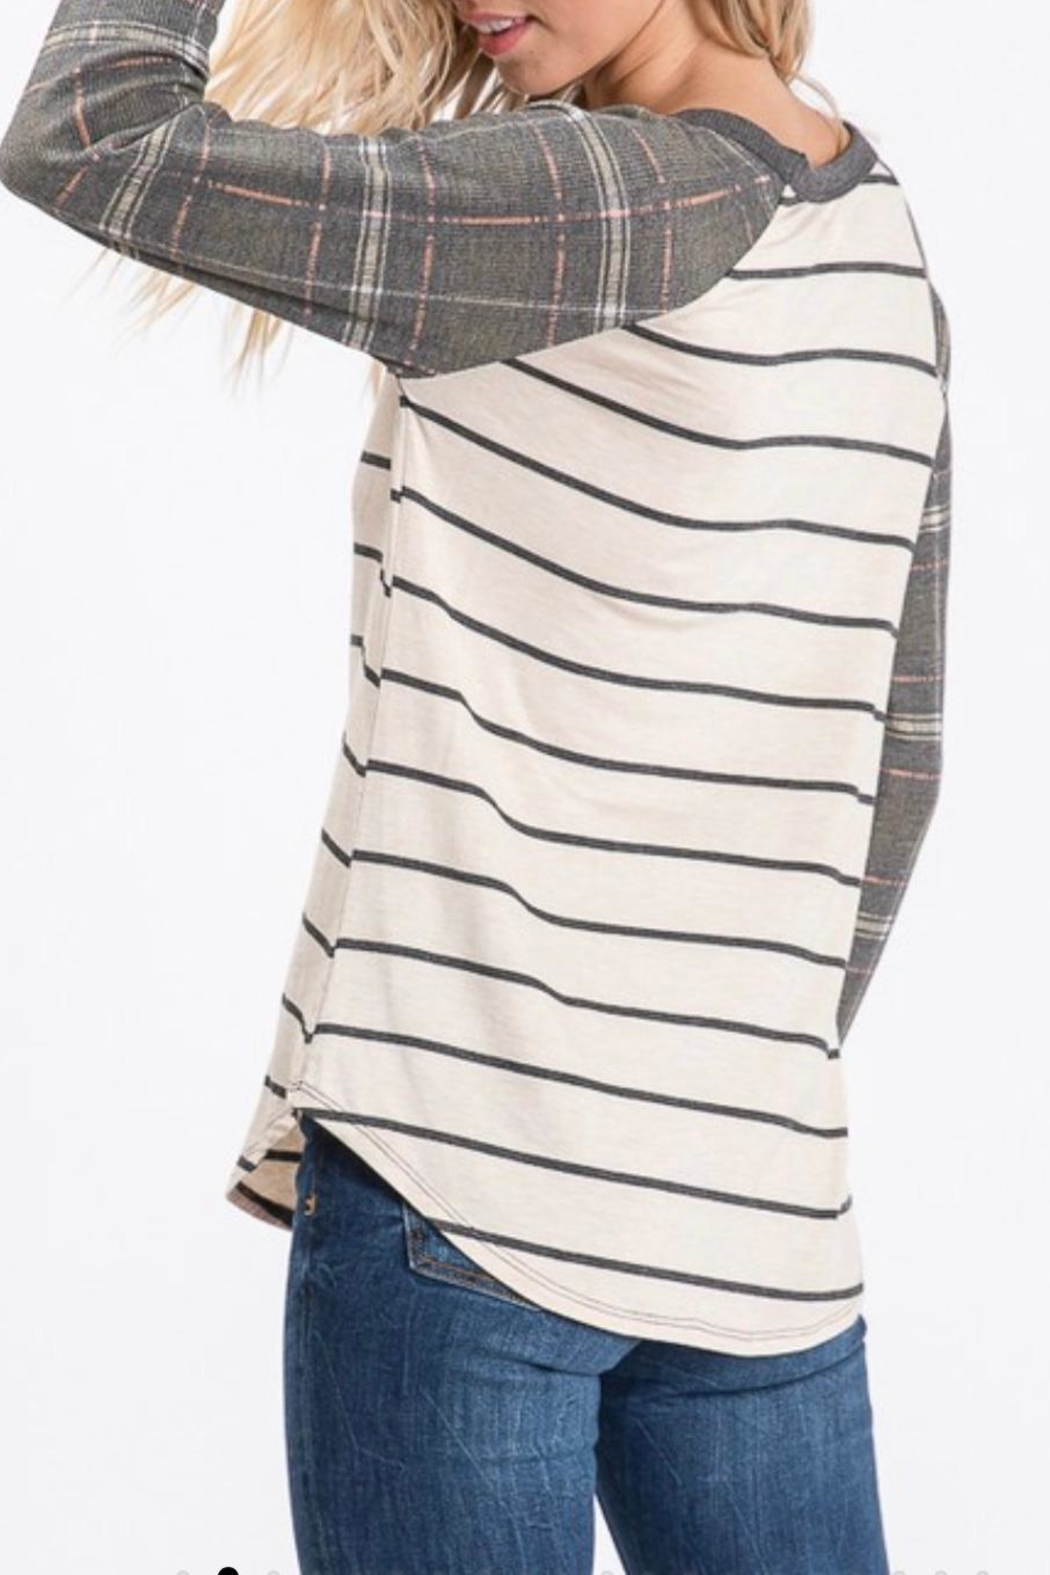 7th Ray Plaid Raglan-Sleeve Top - Side Cropped Image